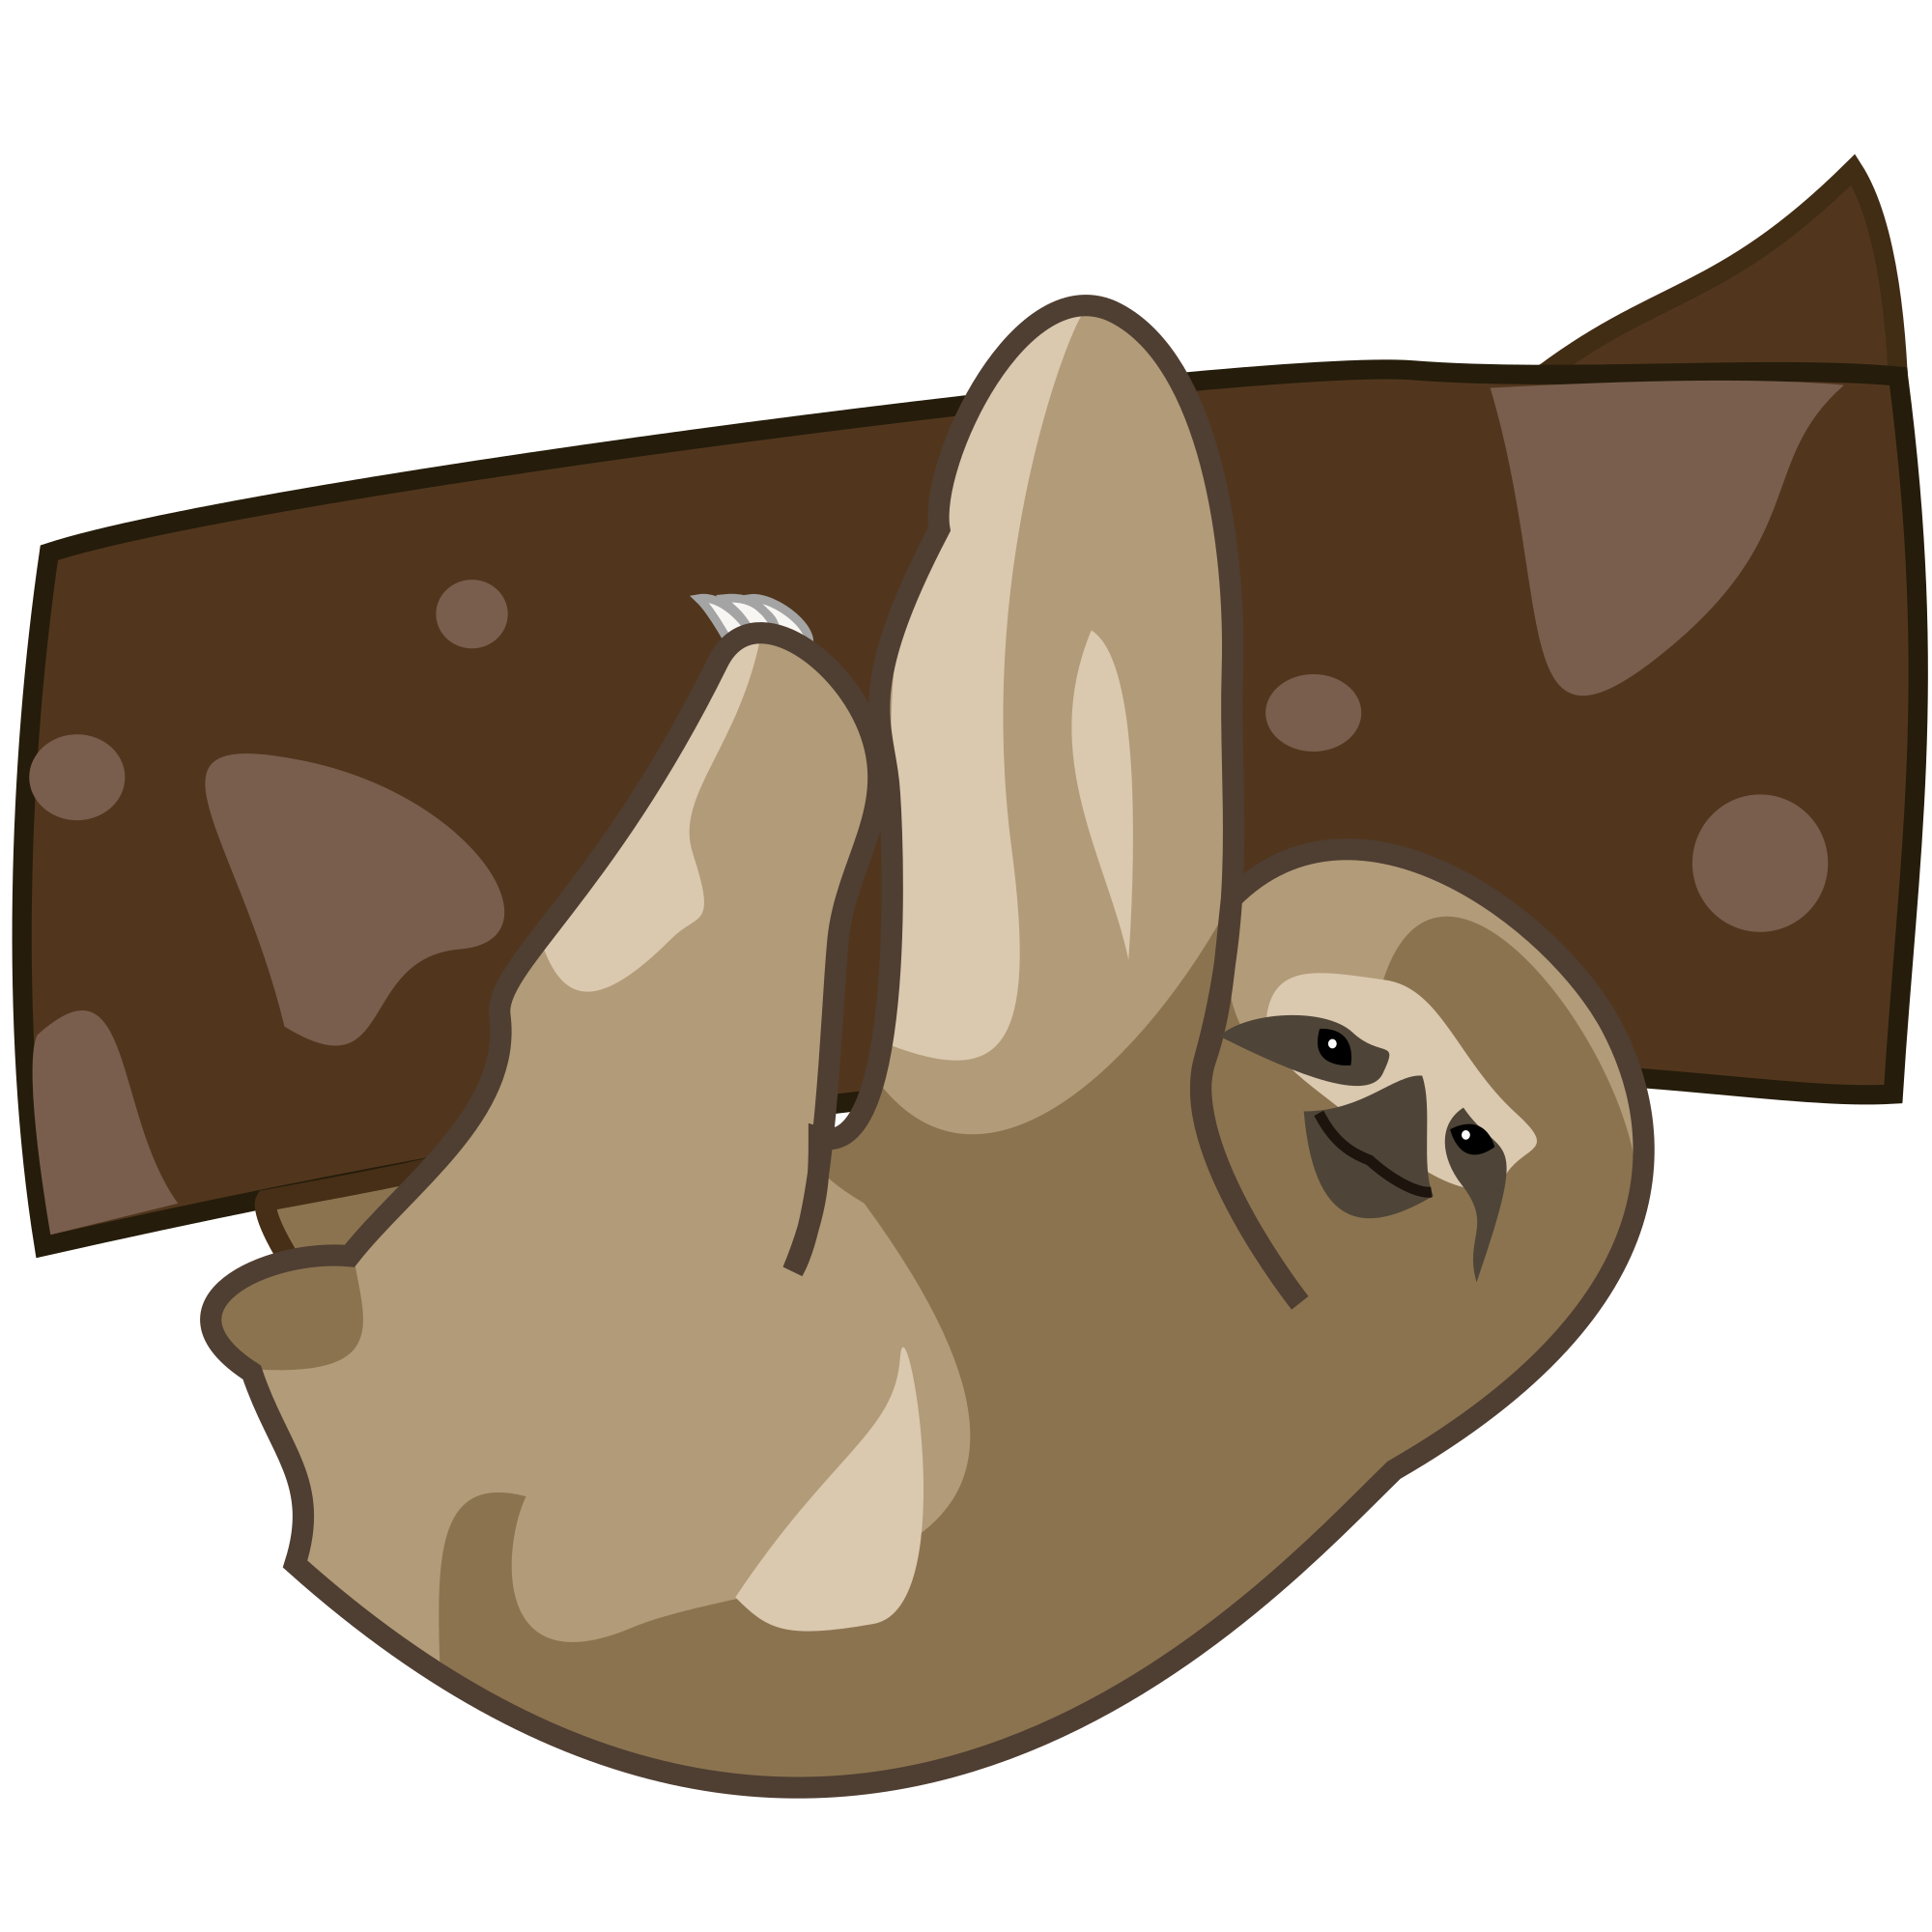 clip art library download Sloth clipart. File cartoon svg wikimedia.